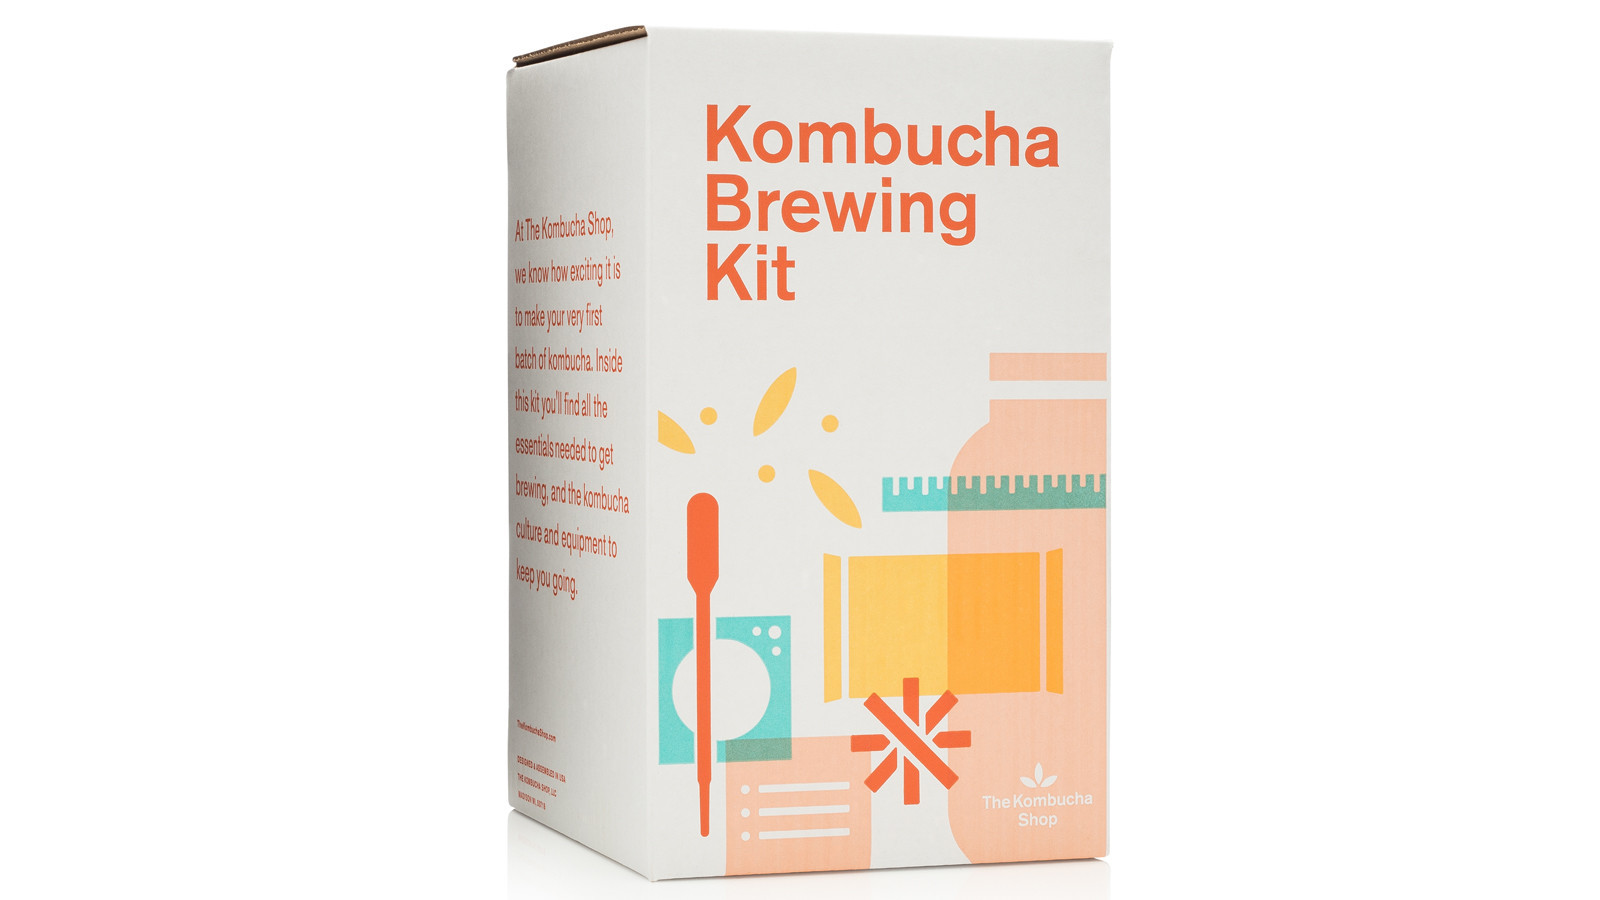 This kombucha kit comes with everything you need to make it at home.